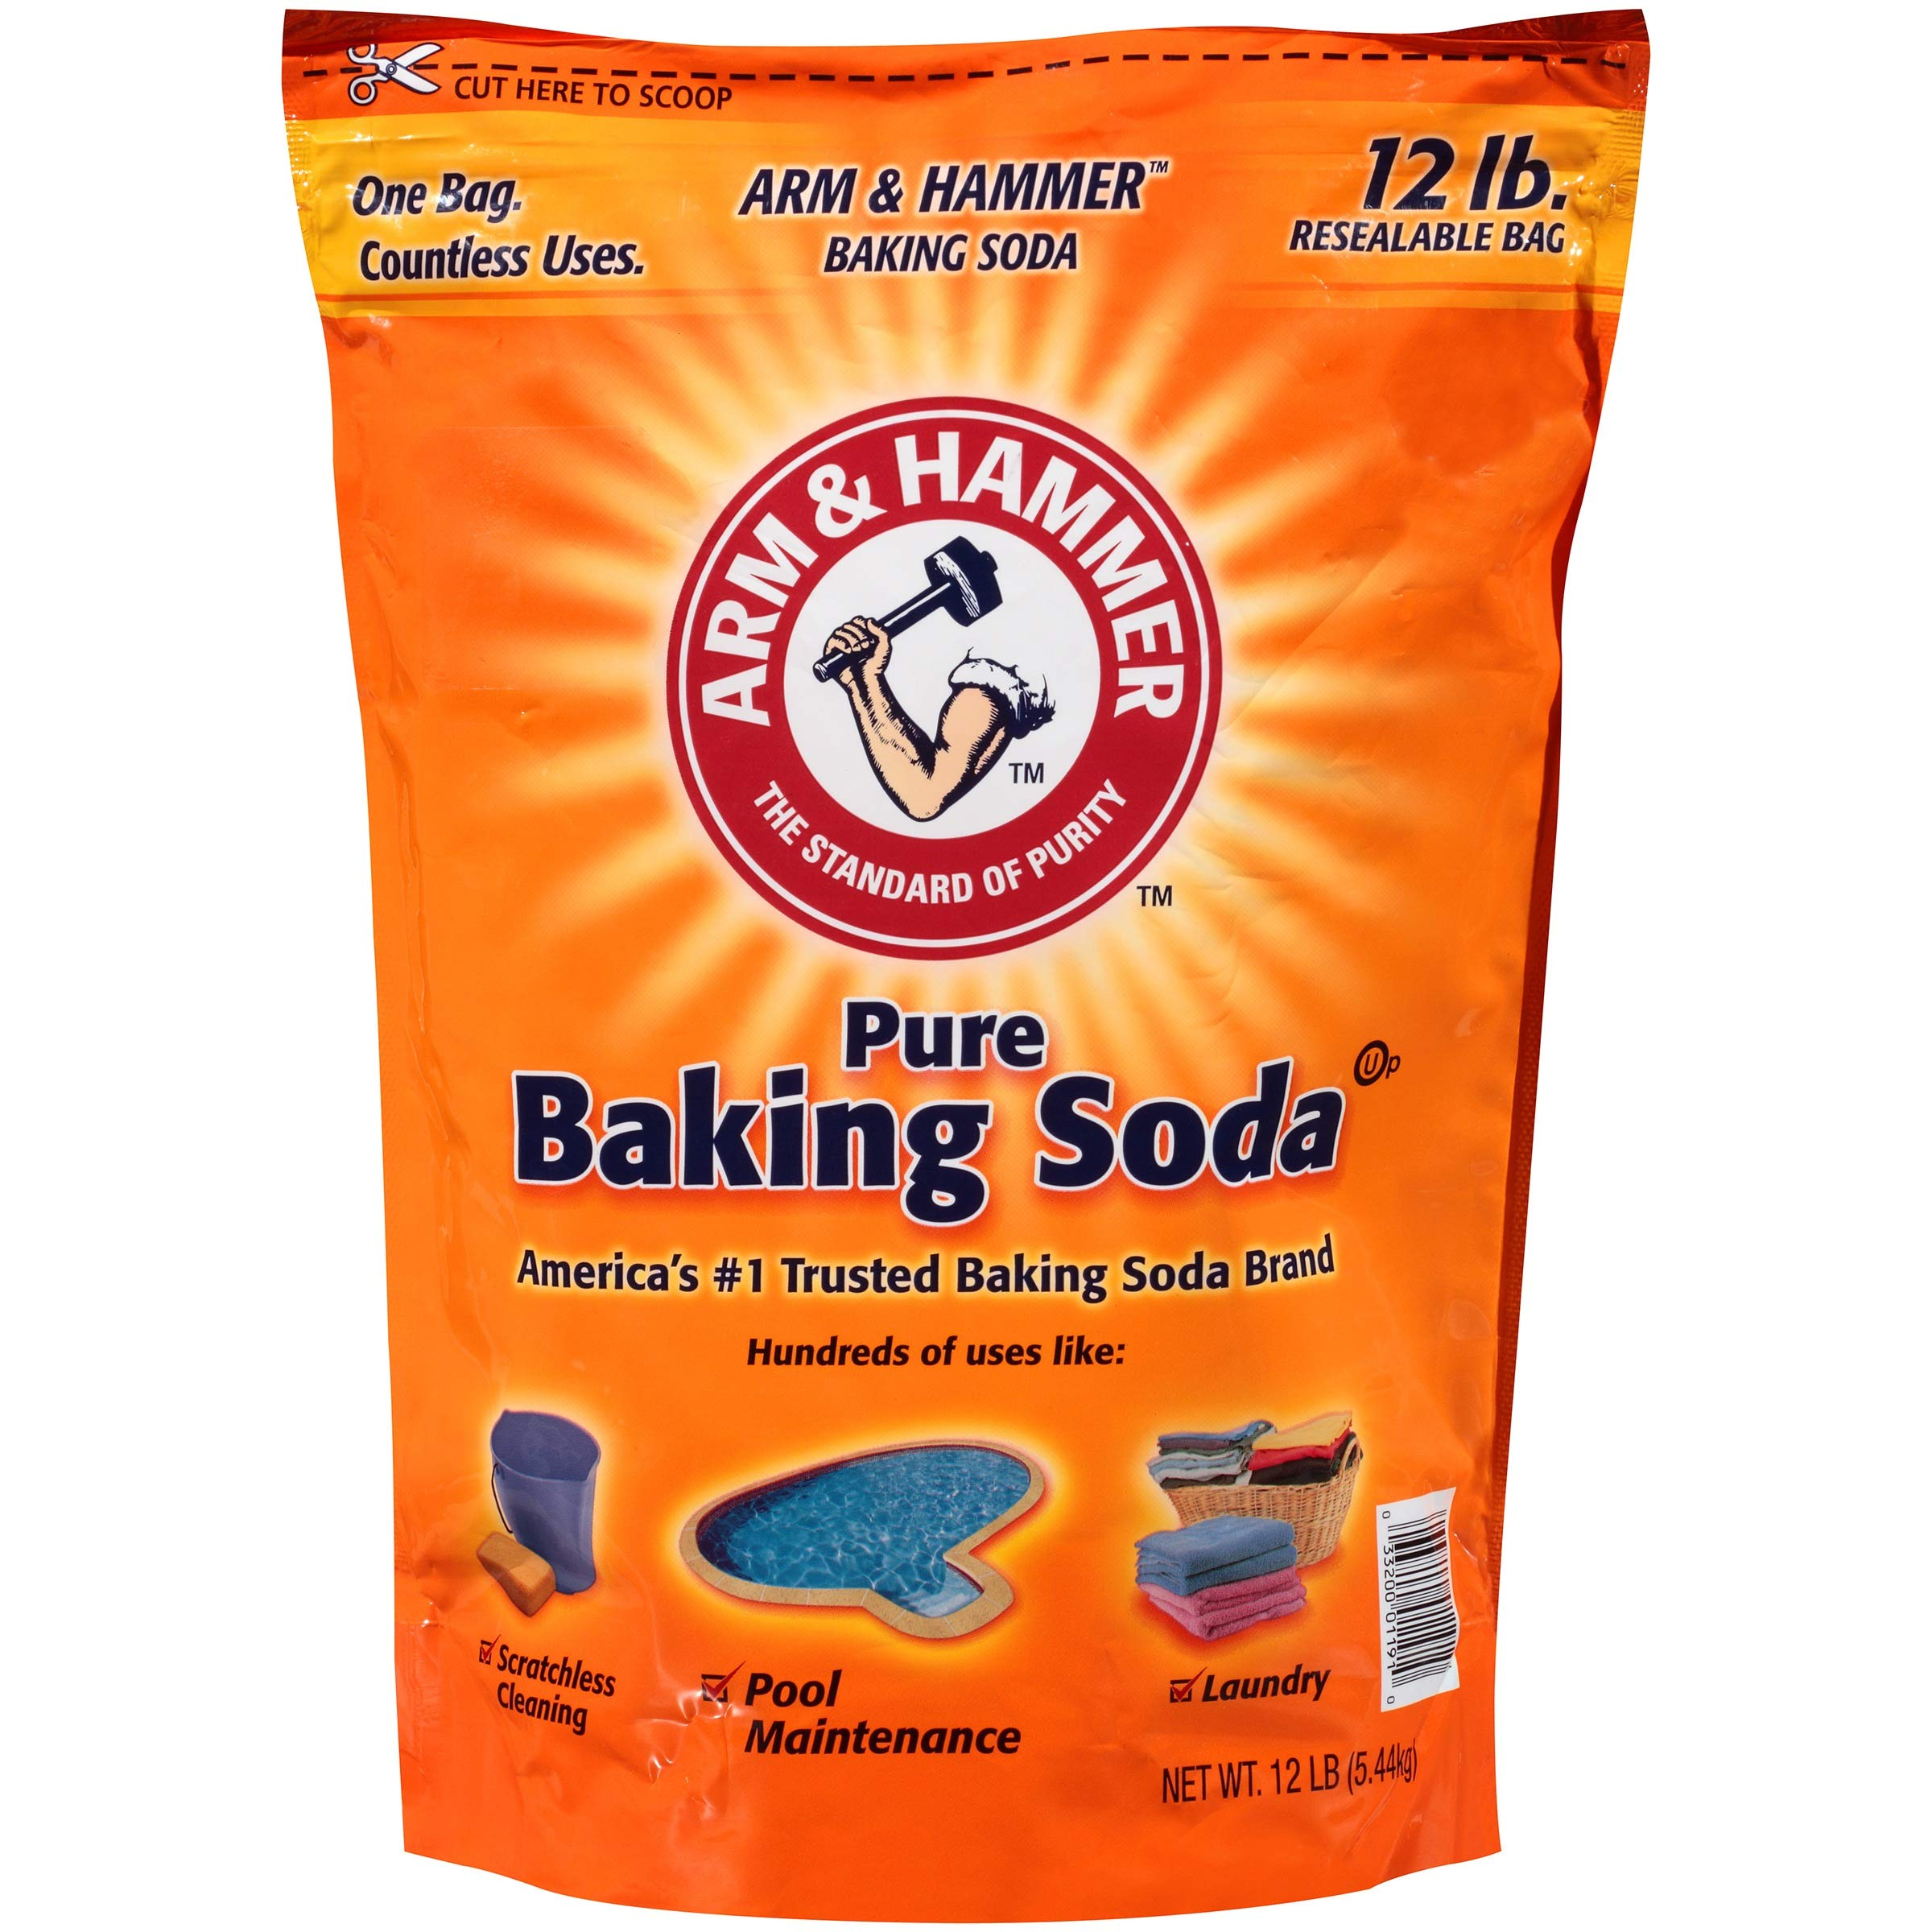 Arm & Hammer Pure Baking Soda, 12 pound - 4 pack by Arm & Hammer (Image #2)